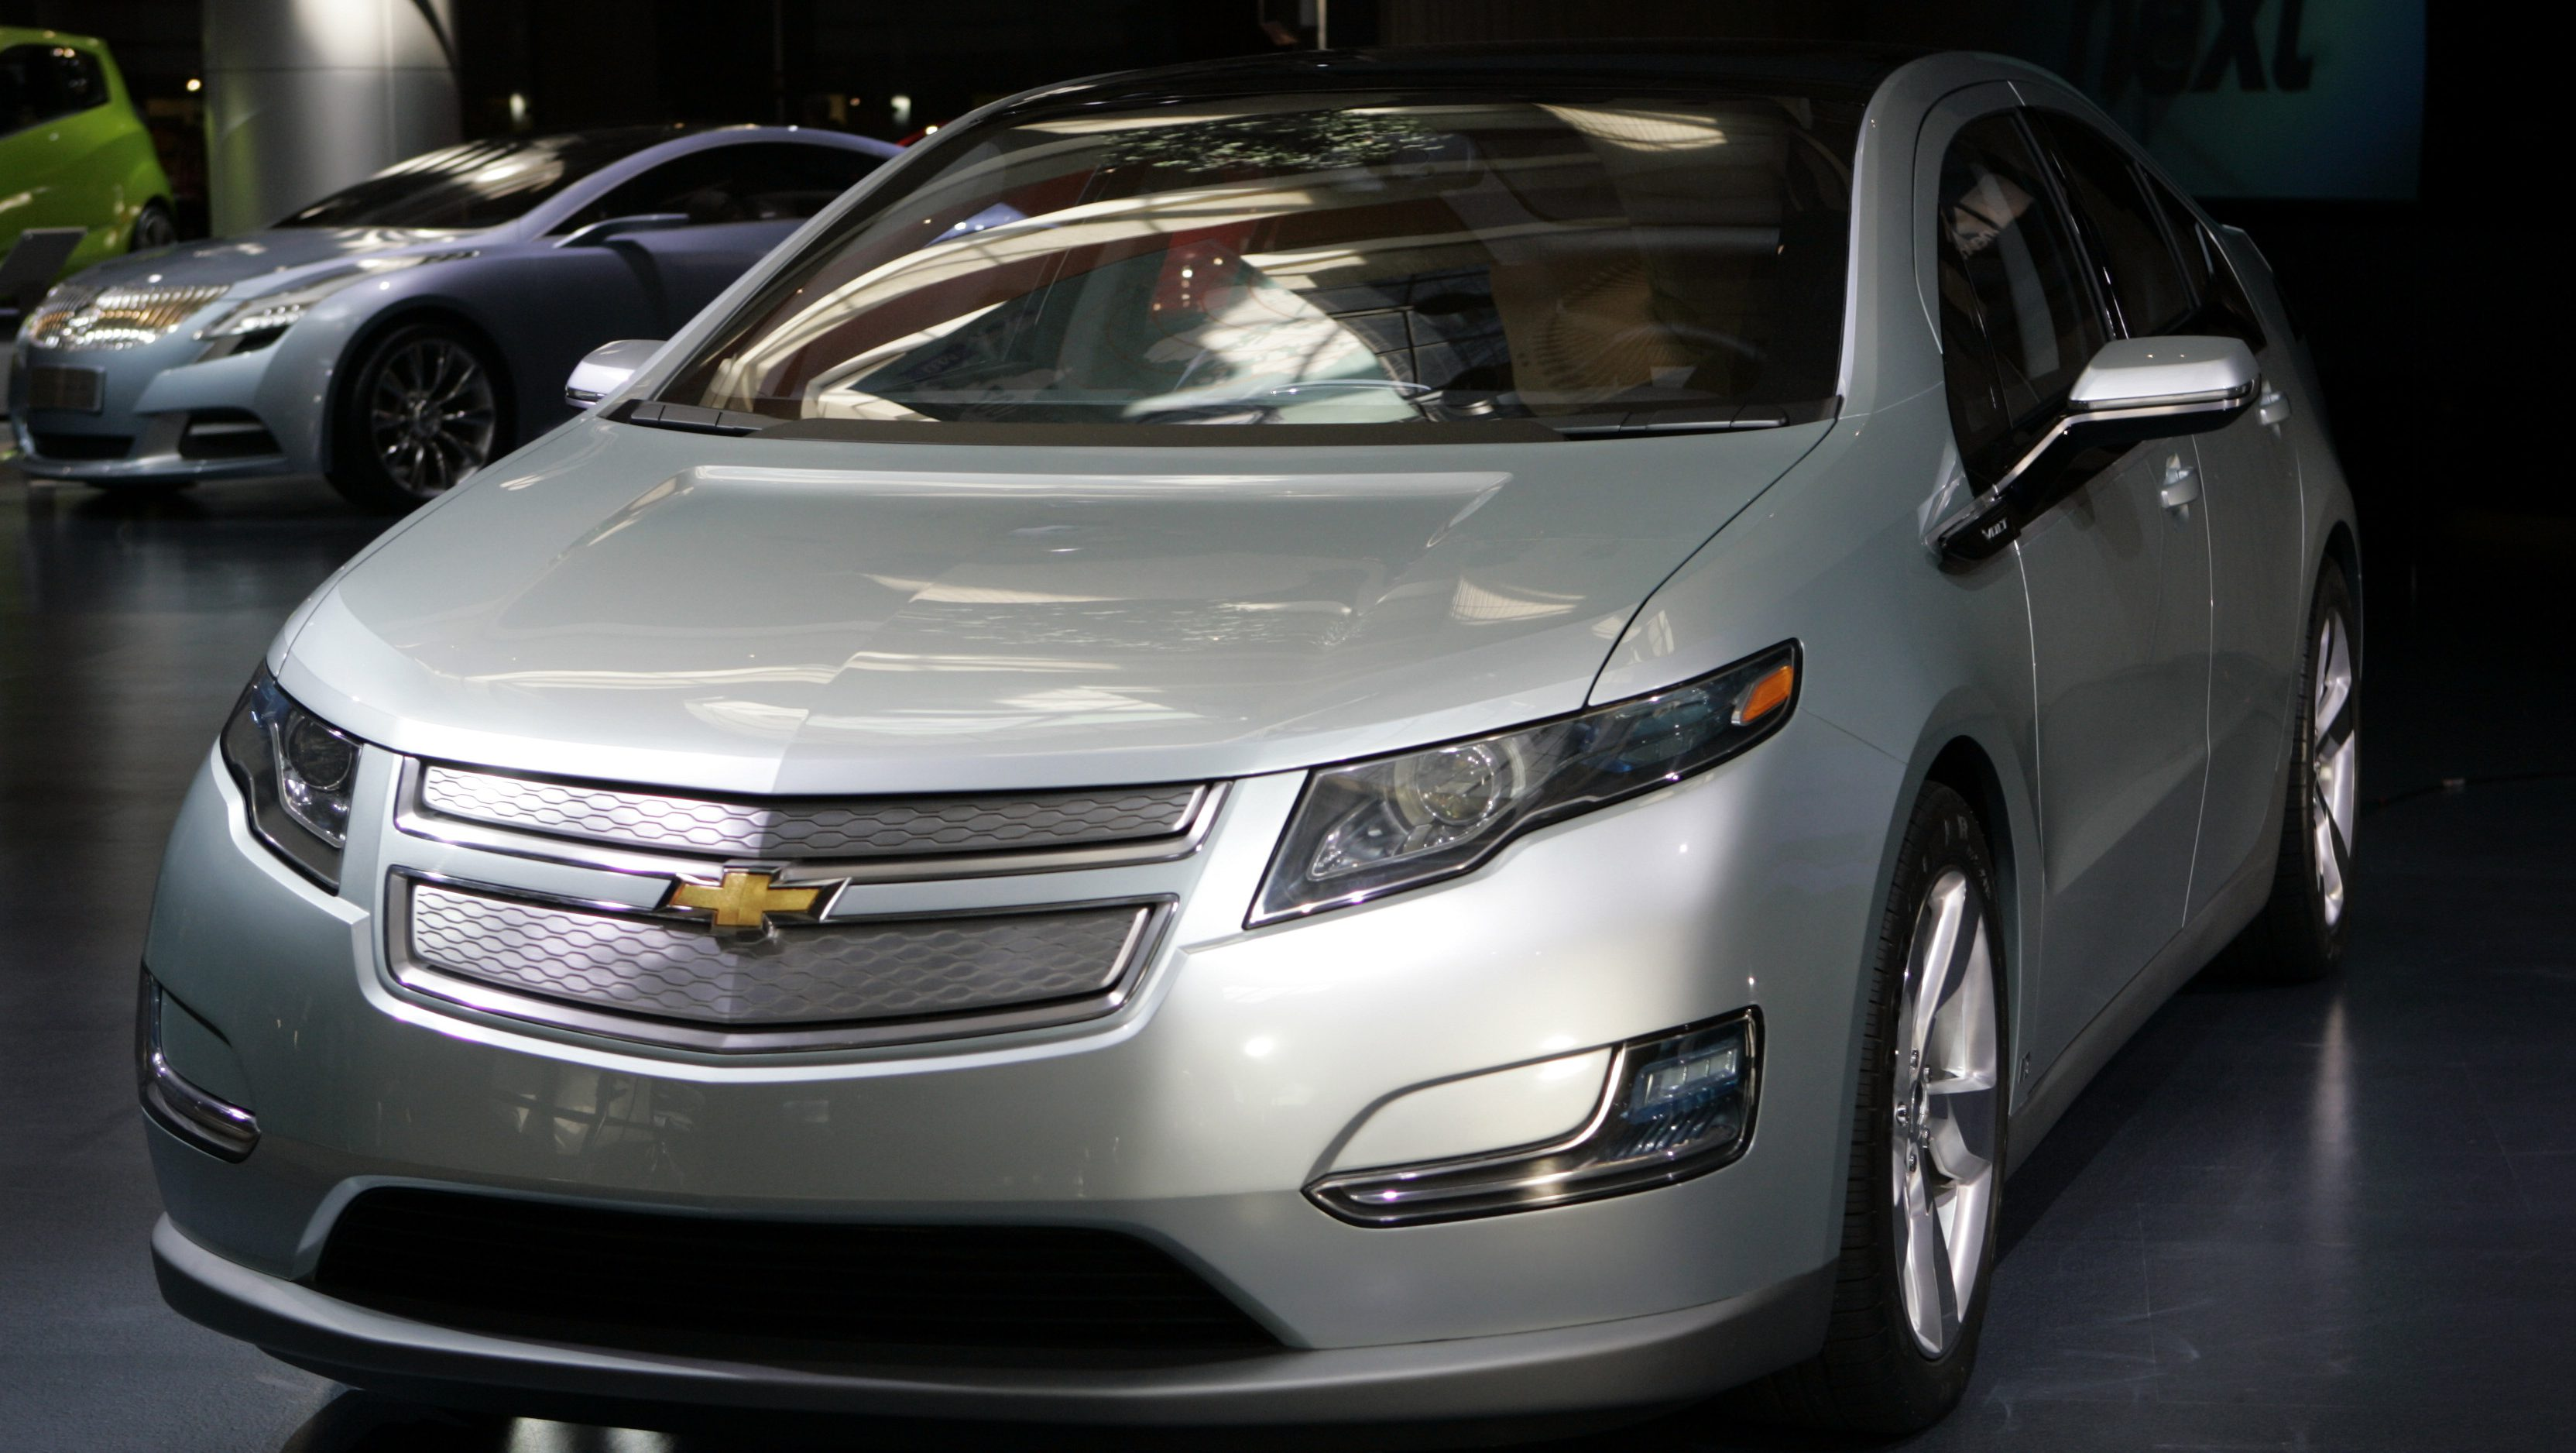 Chevy Volt\'s designer, Jelani Aliyu has been appointed boss of ...